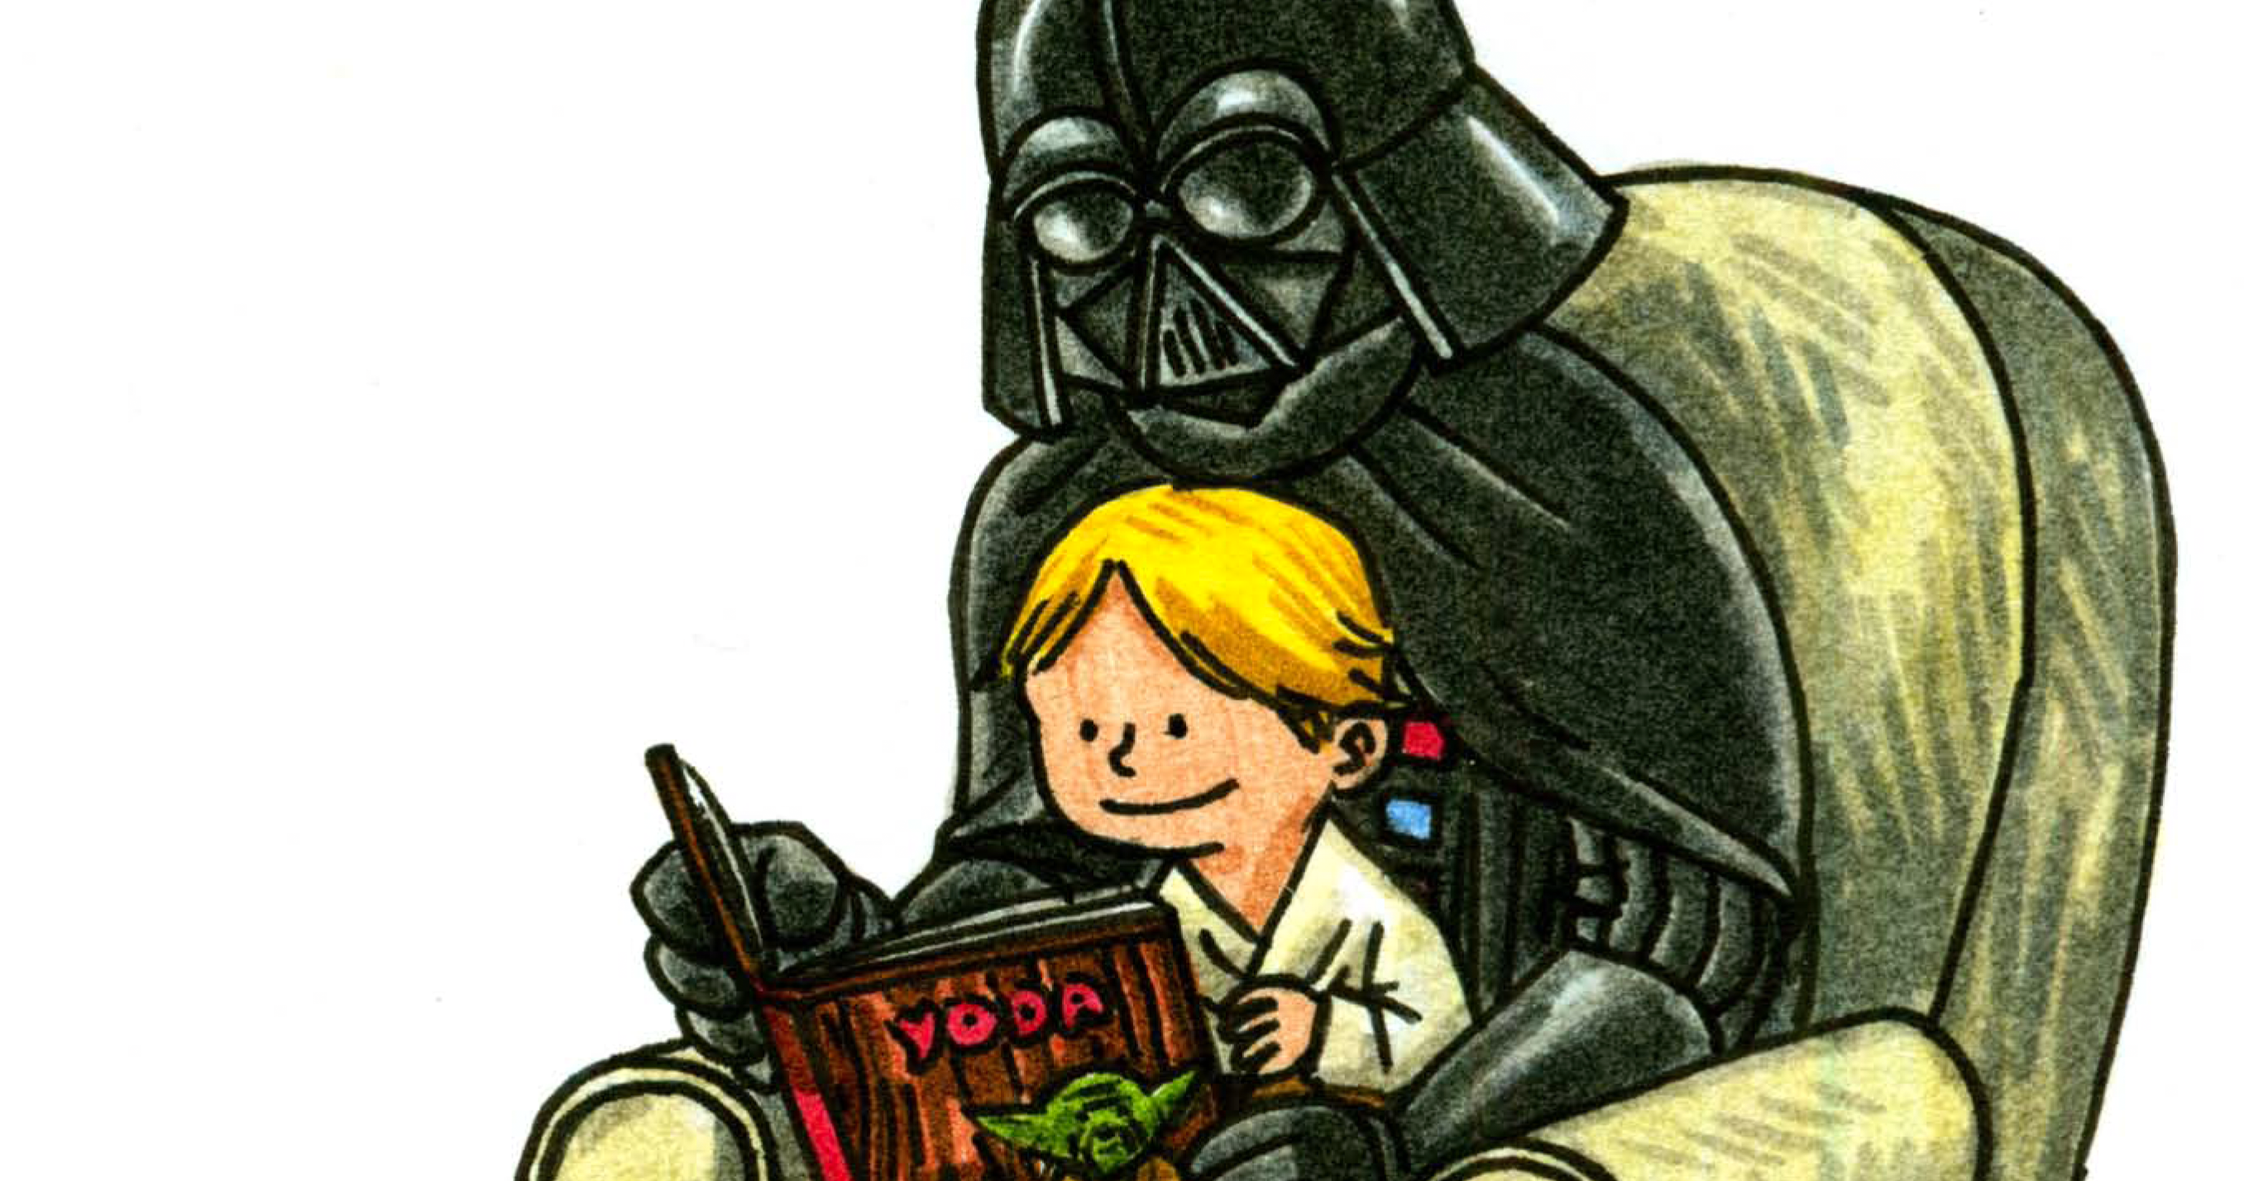 Darth-Vader-And-Son-imagen-destacada